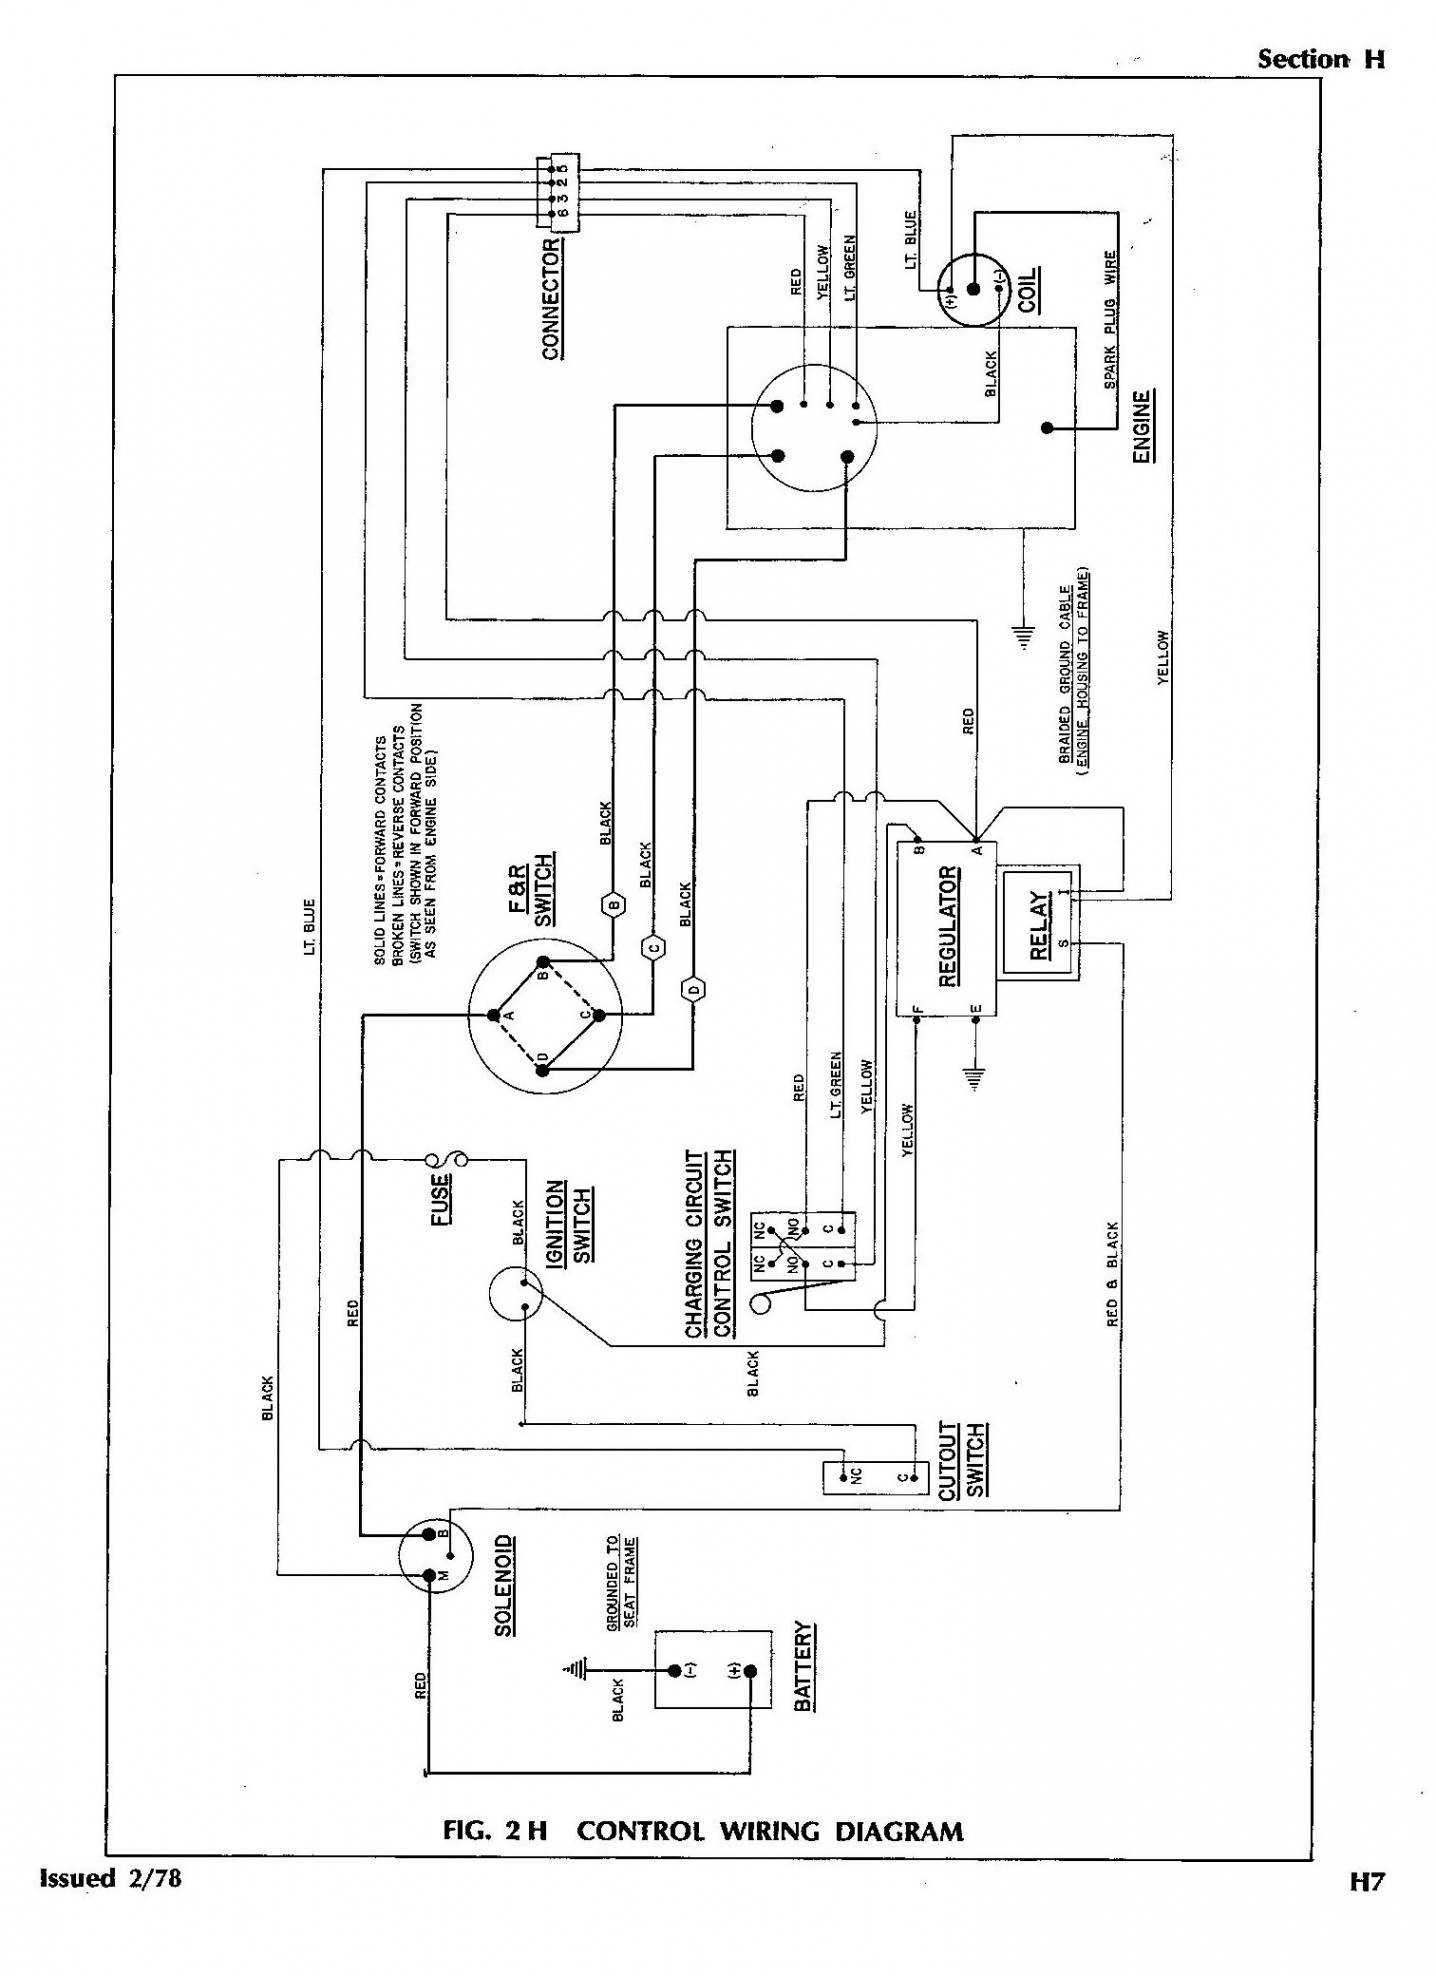 1996 ez go wiring diagram sample. Black Bedroom Furniture Sets. Home Design Ideas